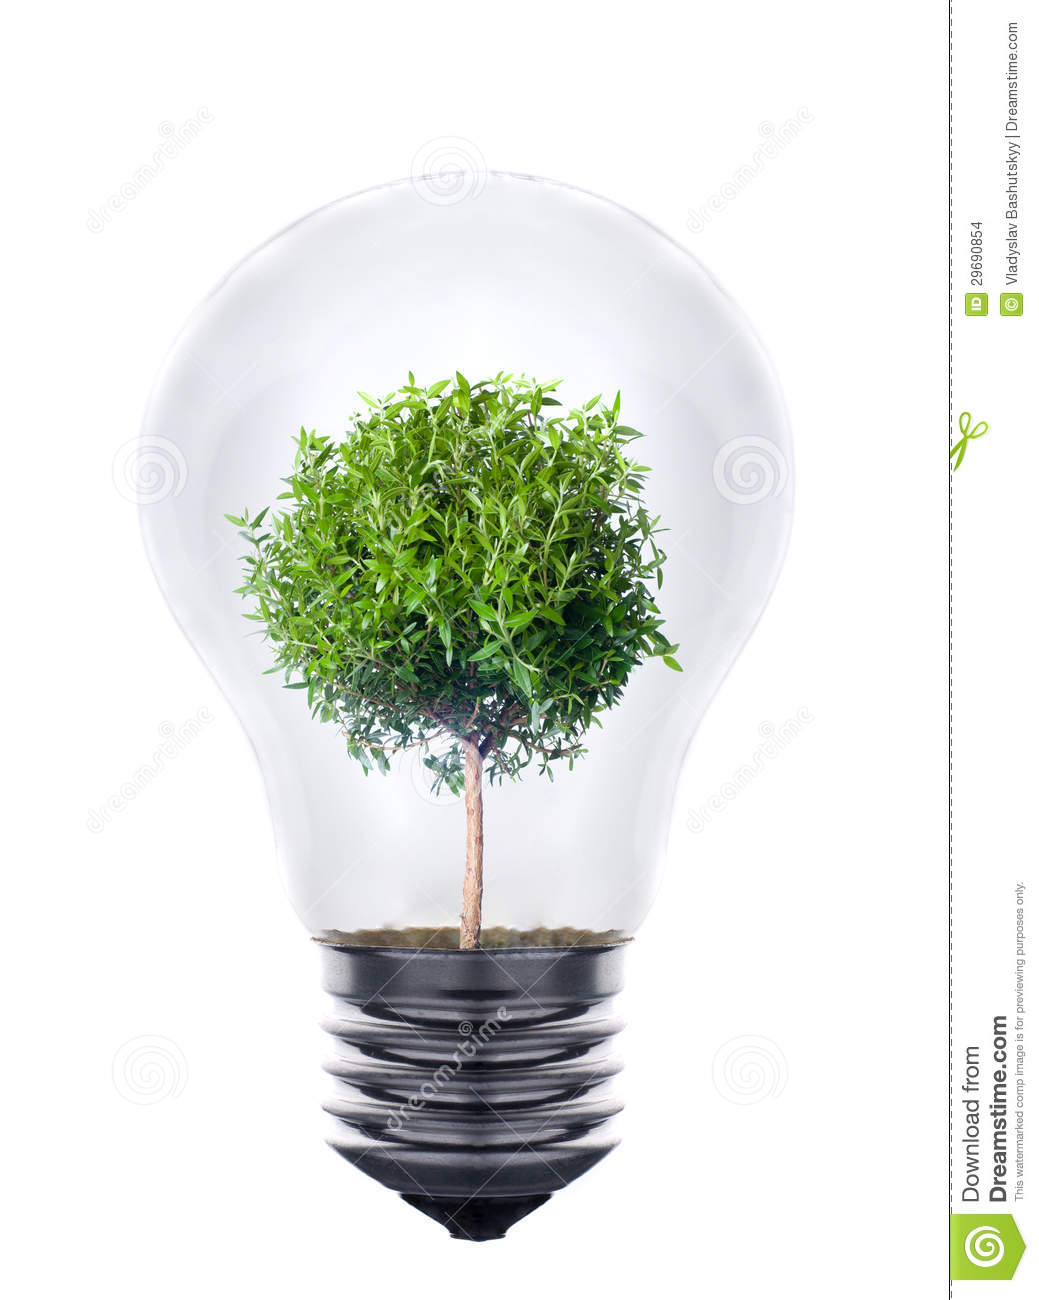 Plant Growing Inside The Light Bulb